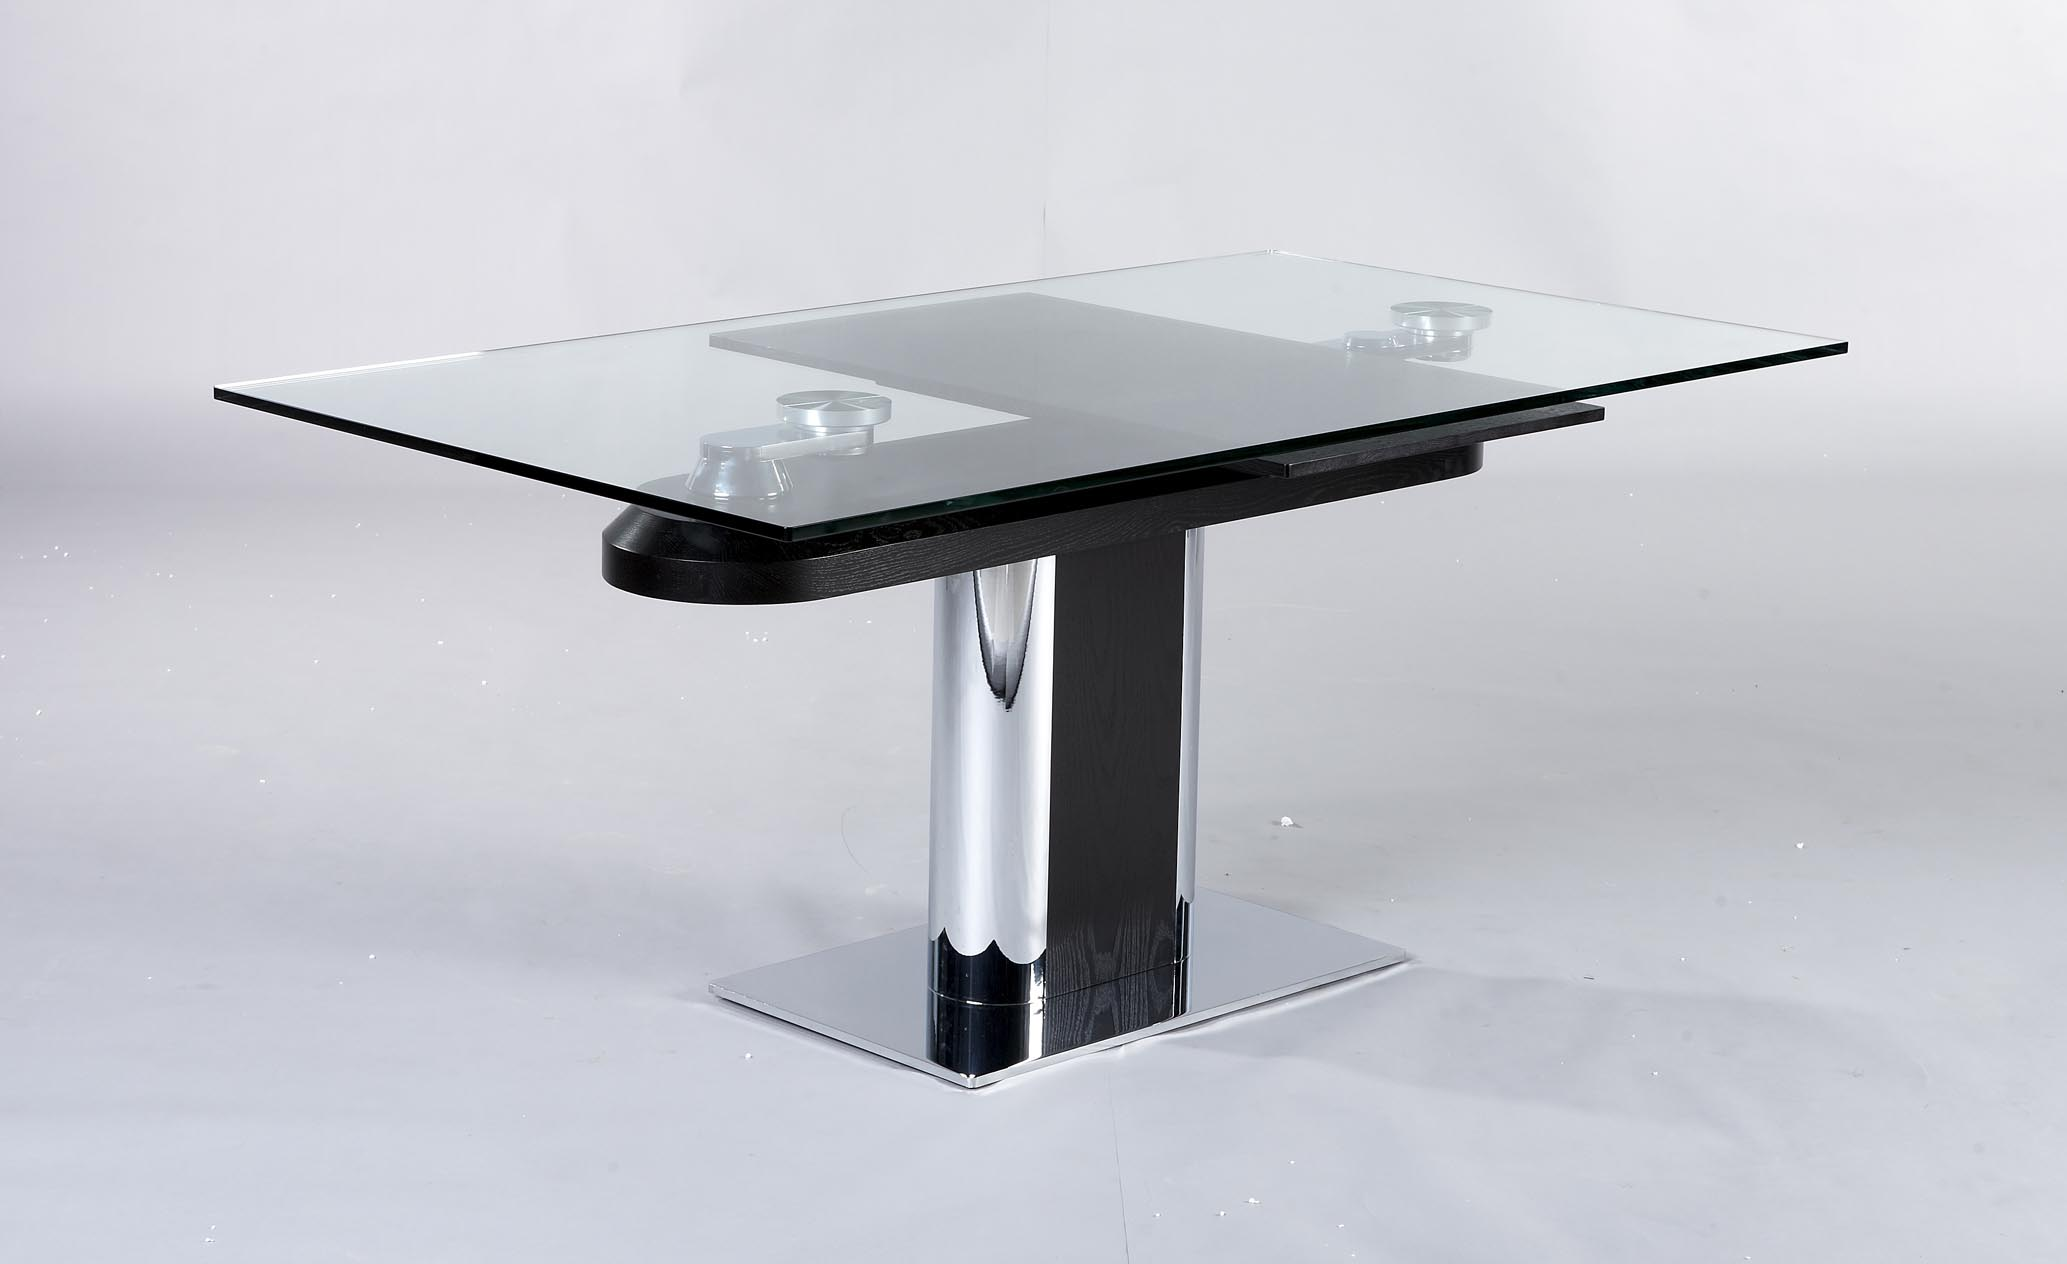 table de salle a manger moderne en verre. Black Bedroom Furniture Sets. Home Design Ideas